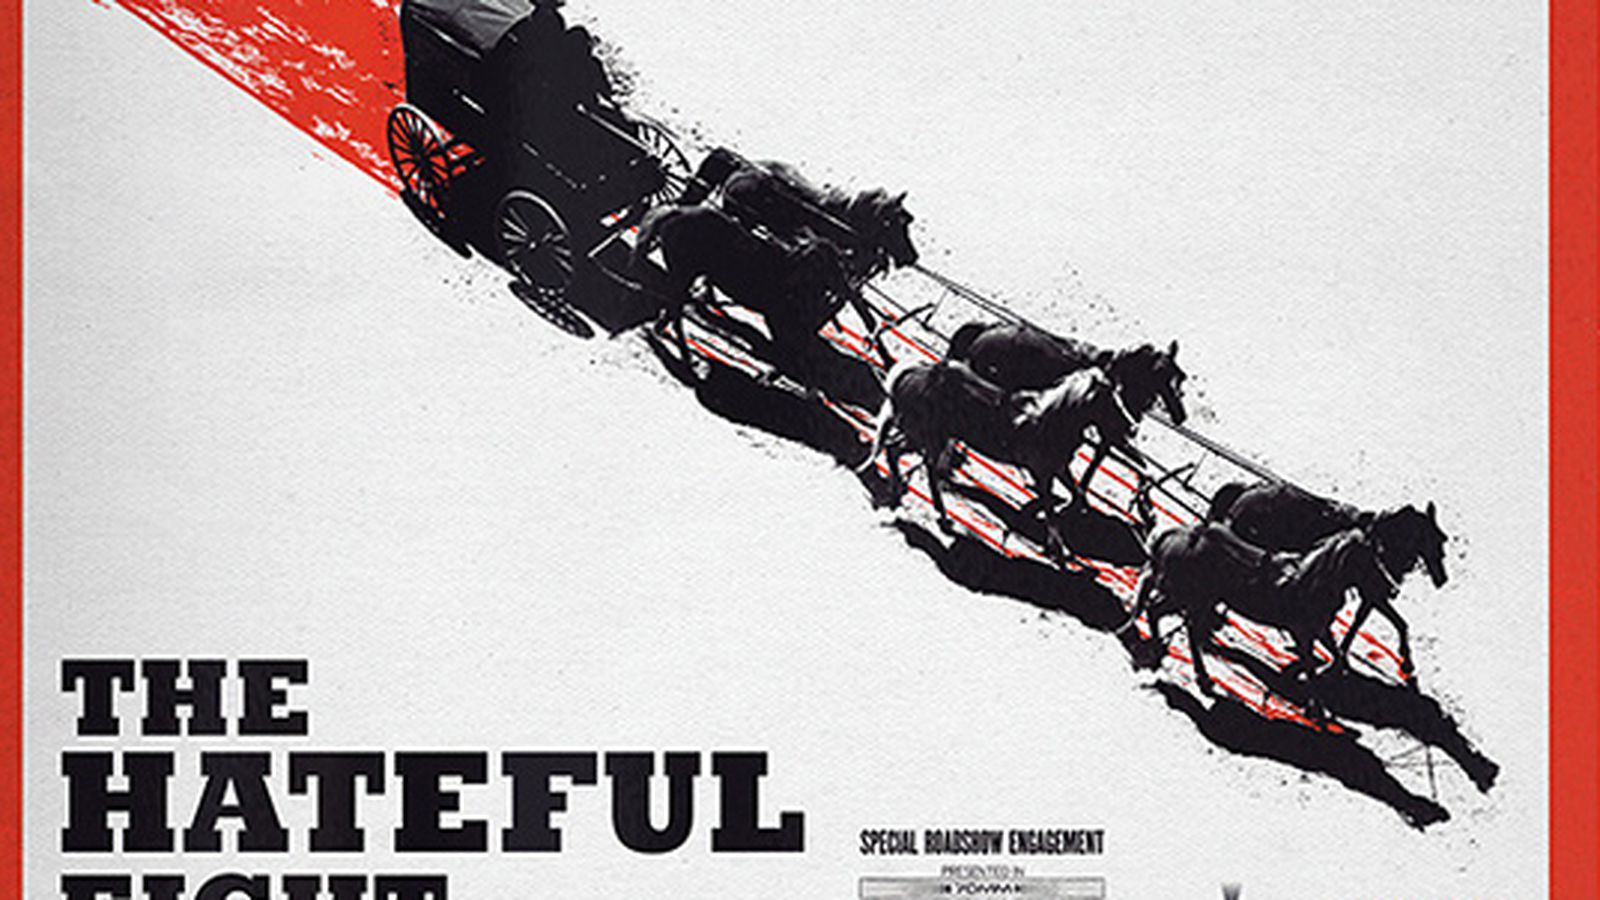 The hateful eight release date in Brisbane